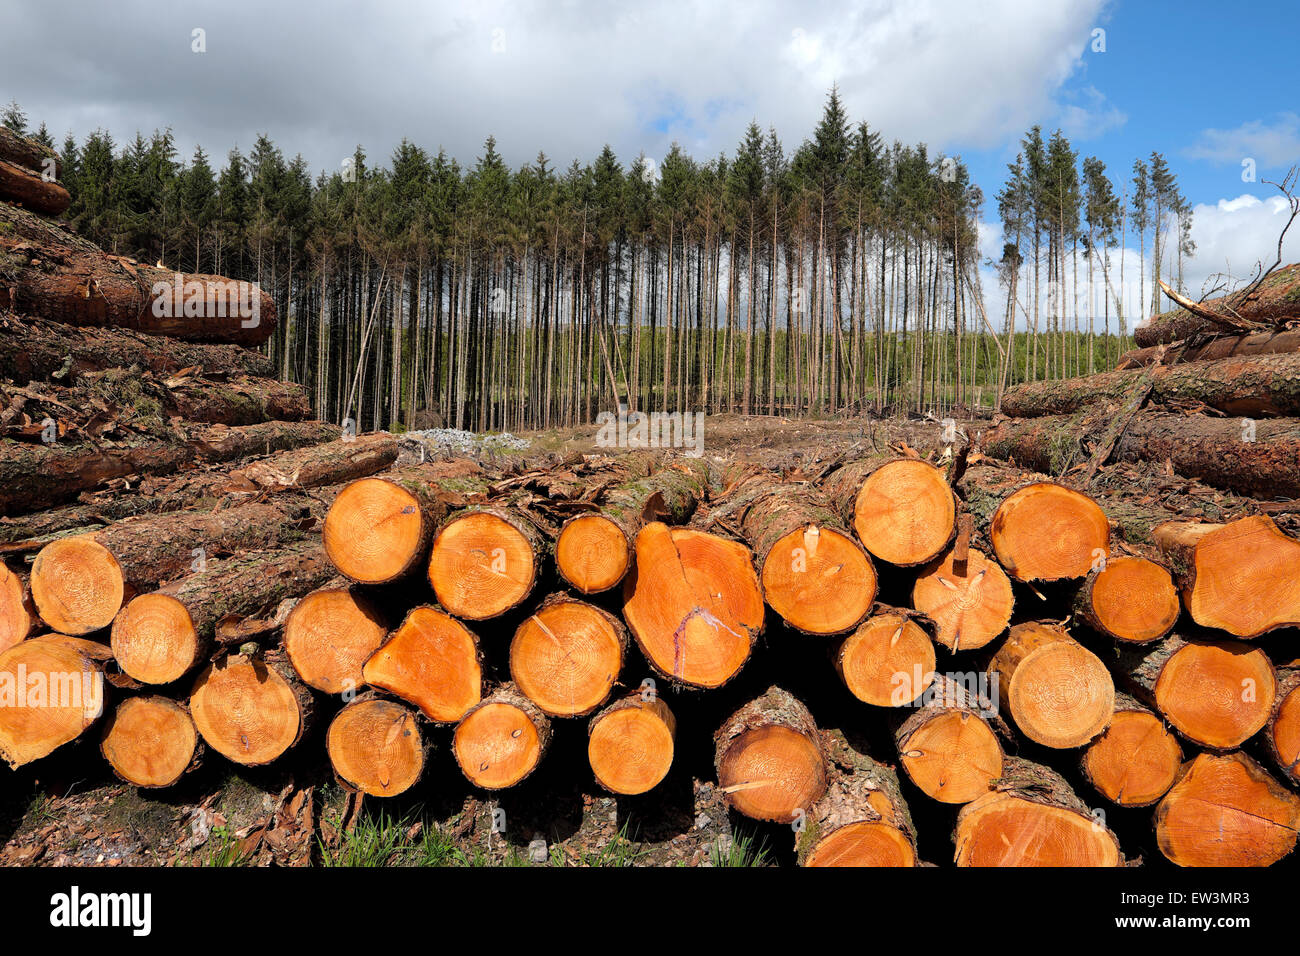 A stack of harvested logs with a line of forestry trees in the background in Brecon Beacons National Park Wales - Stock Image